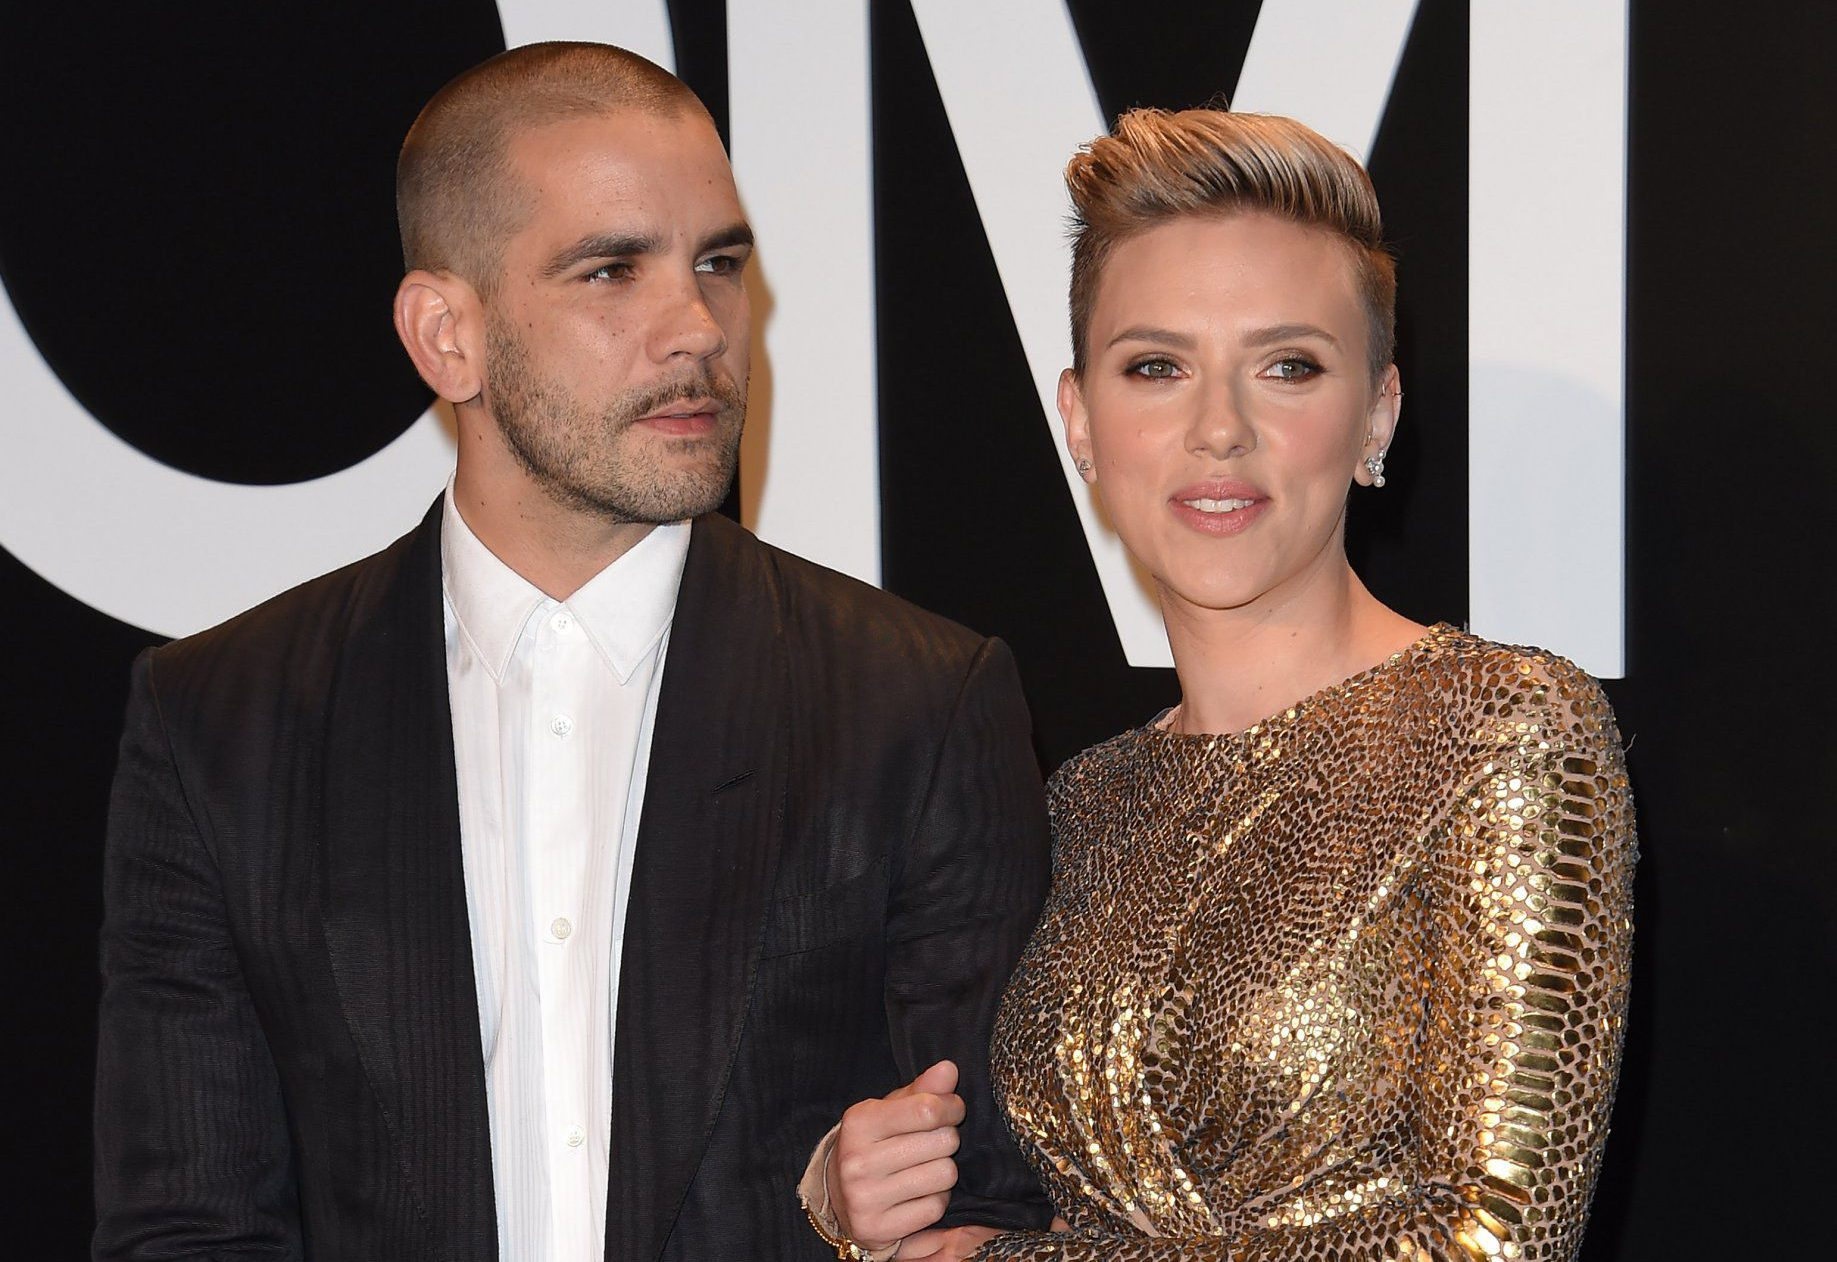 LOS ANGELES, CA - FEBRUARY 20: Actress Scarlett Johansson and husband Romain Dauriac arrive at the Tom Ford Autumn/Winter 2015 Womenswear Collection Presentation at Milk Studios on February 20, 2015 in Los Angeles, California. (Photo by Axelle/Bauer-Griffin/FilmMagic)